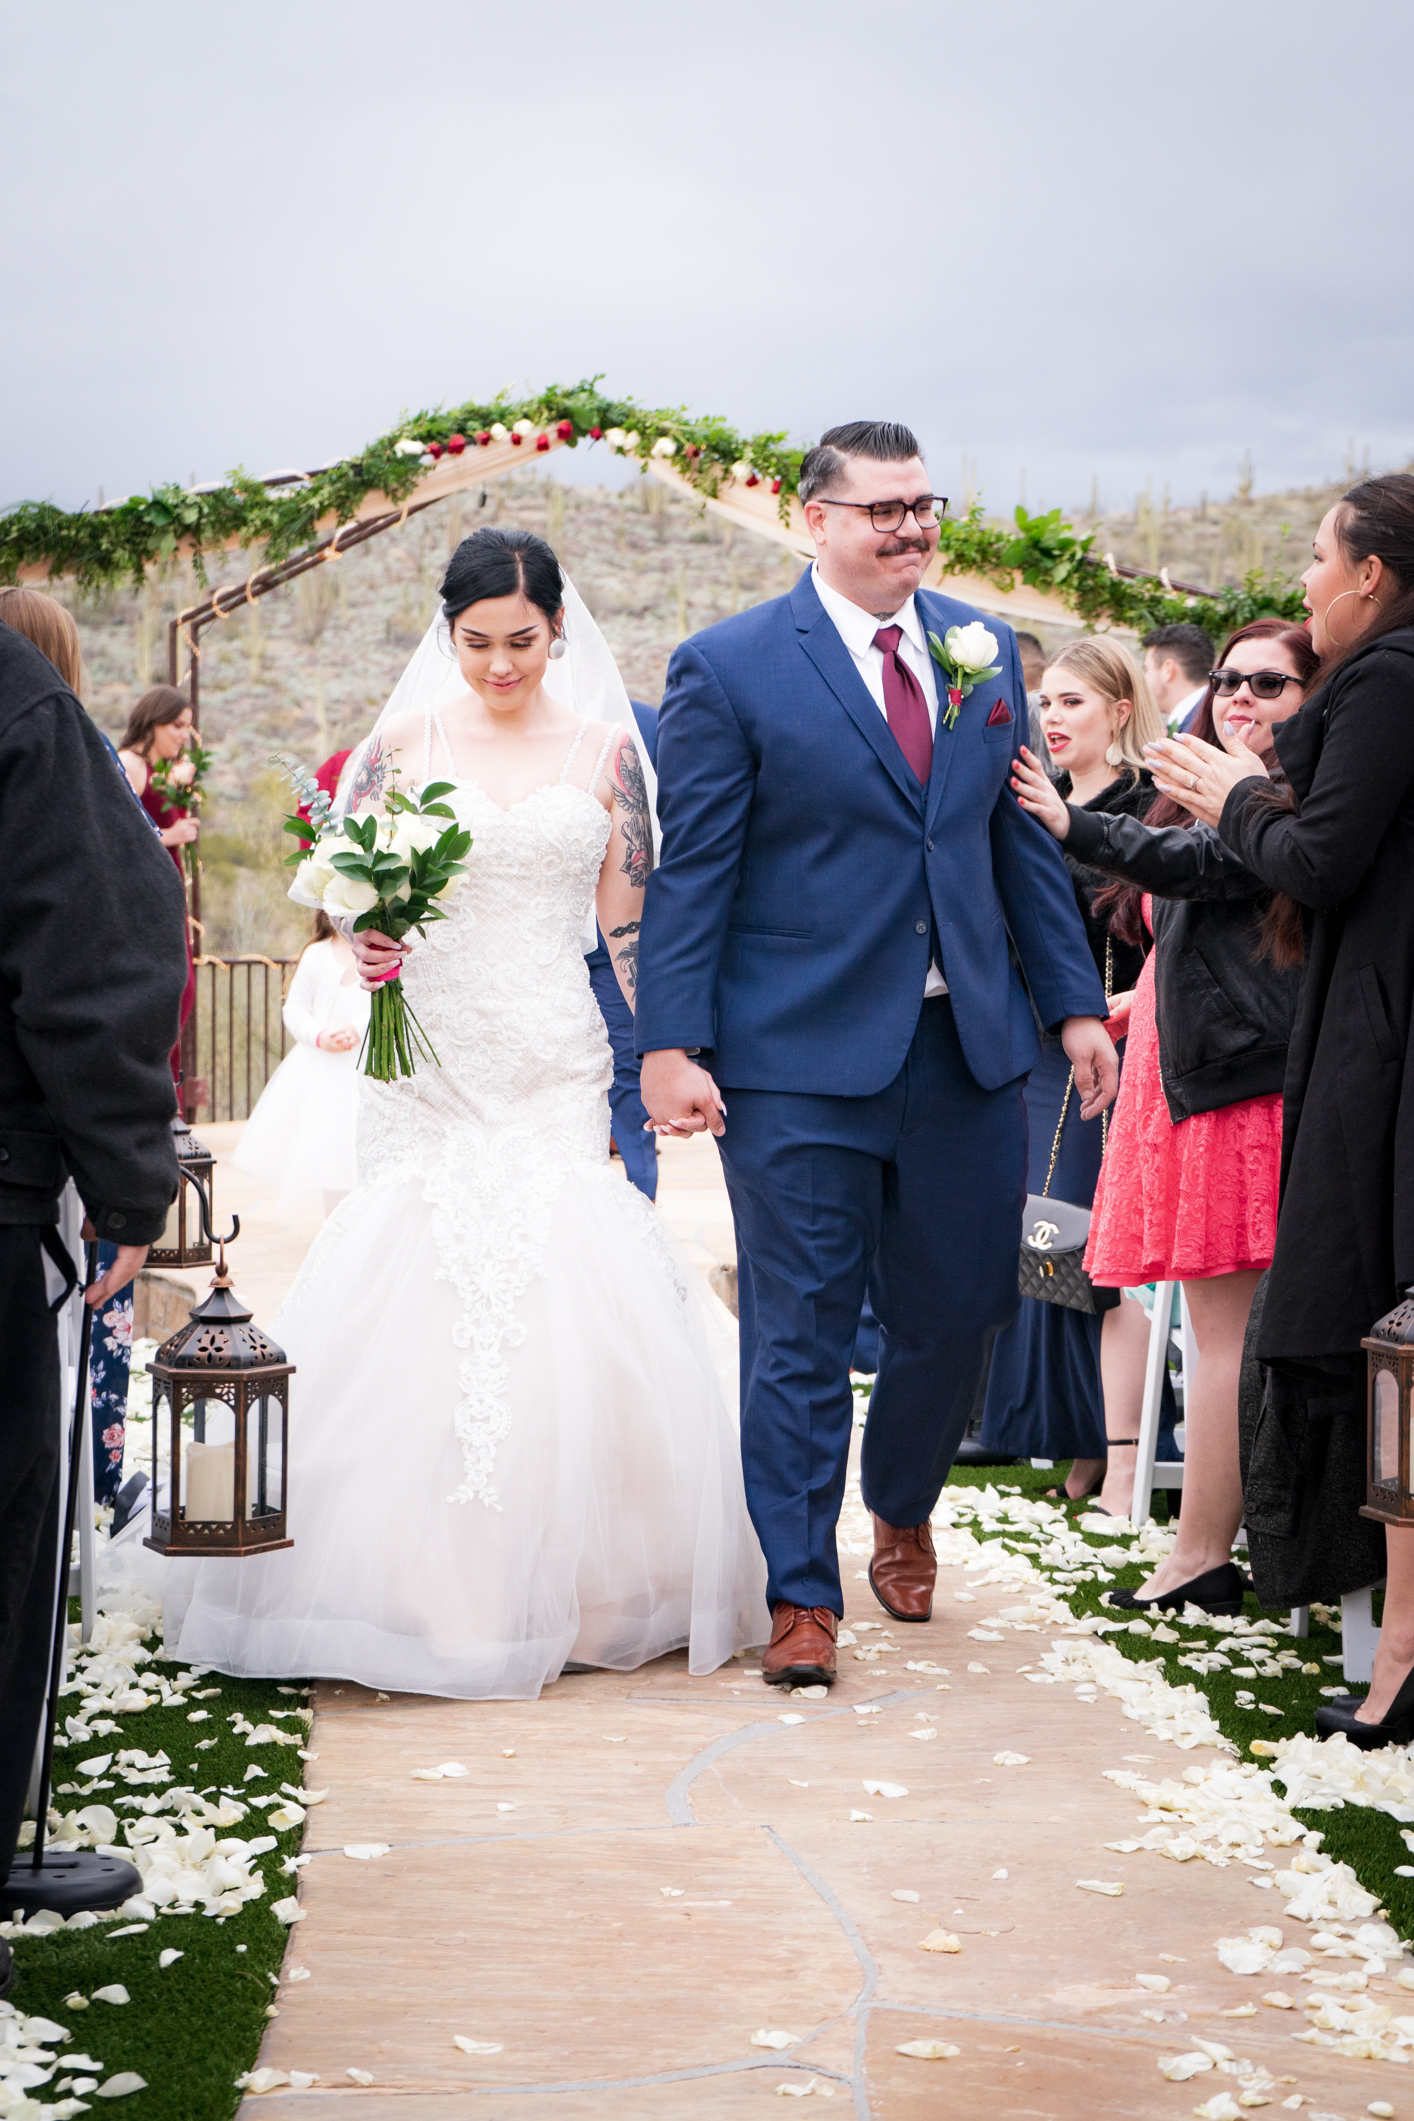 Sean_Marin Wedding_02_22_2019-149.jpg